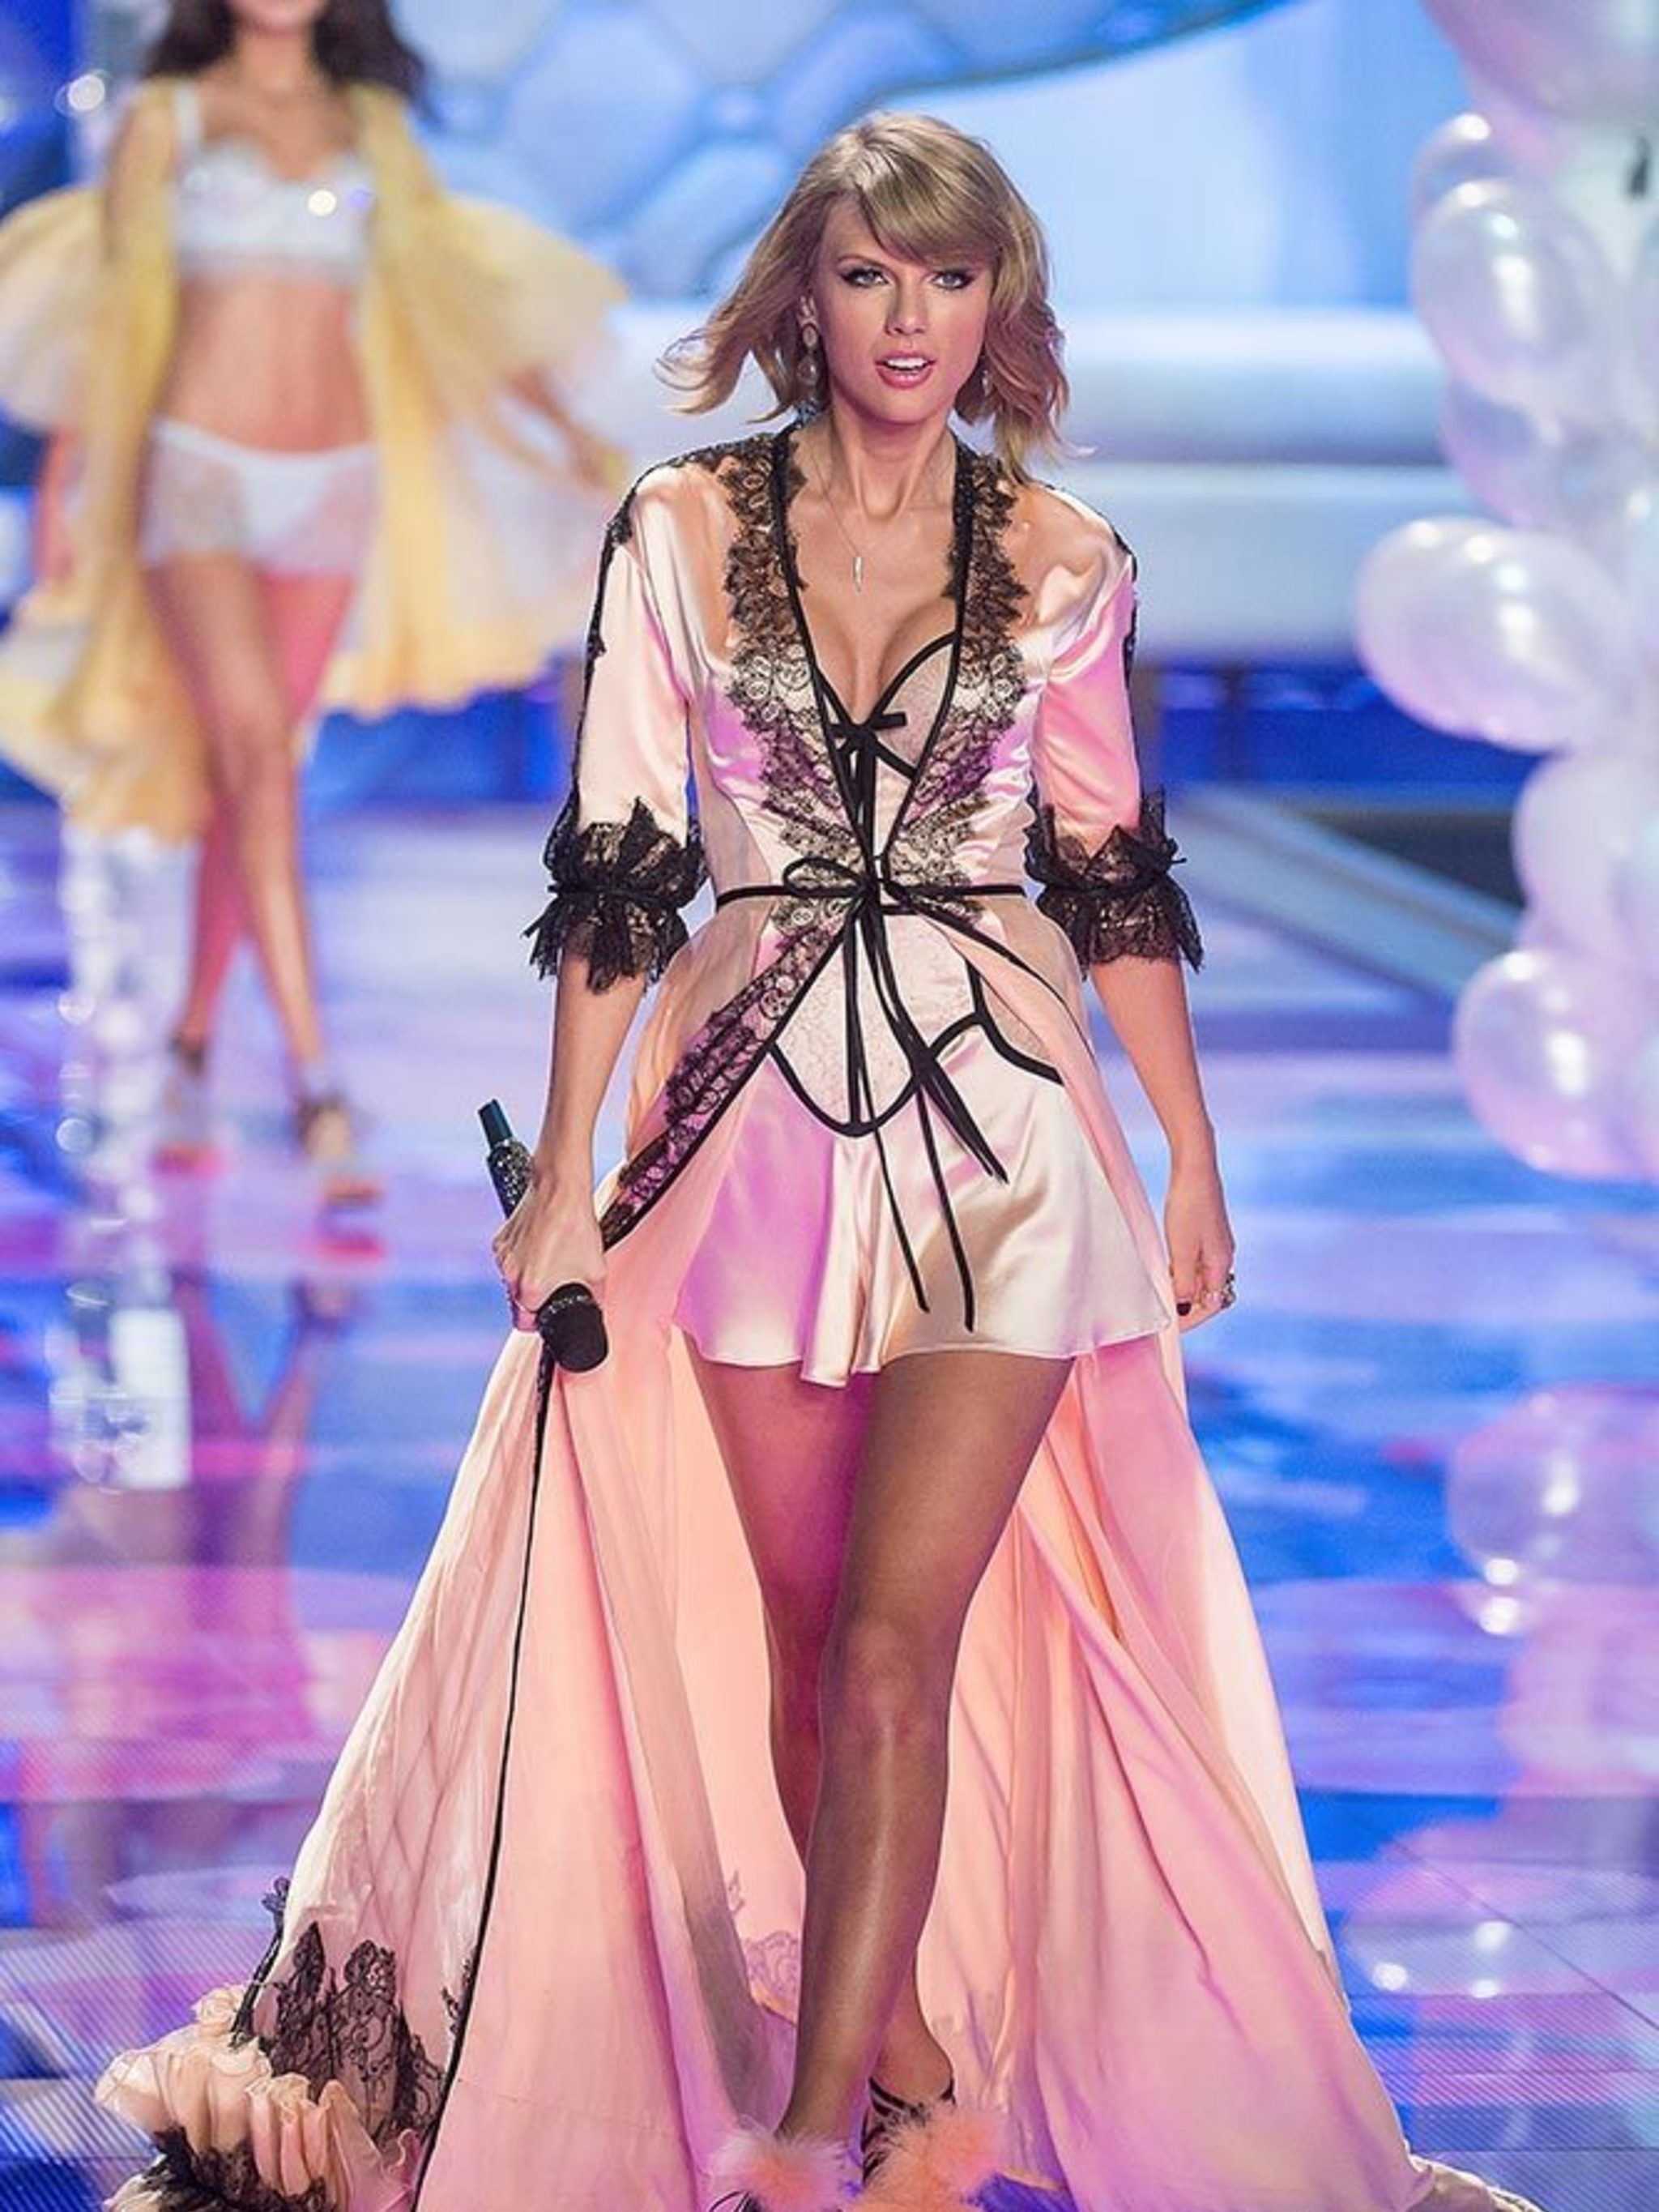 ec039125066b1 Taylor Swift's Style File - Every One Of Taylor Swift's Country Glam ...